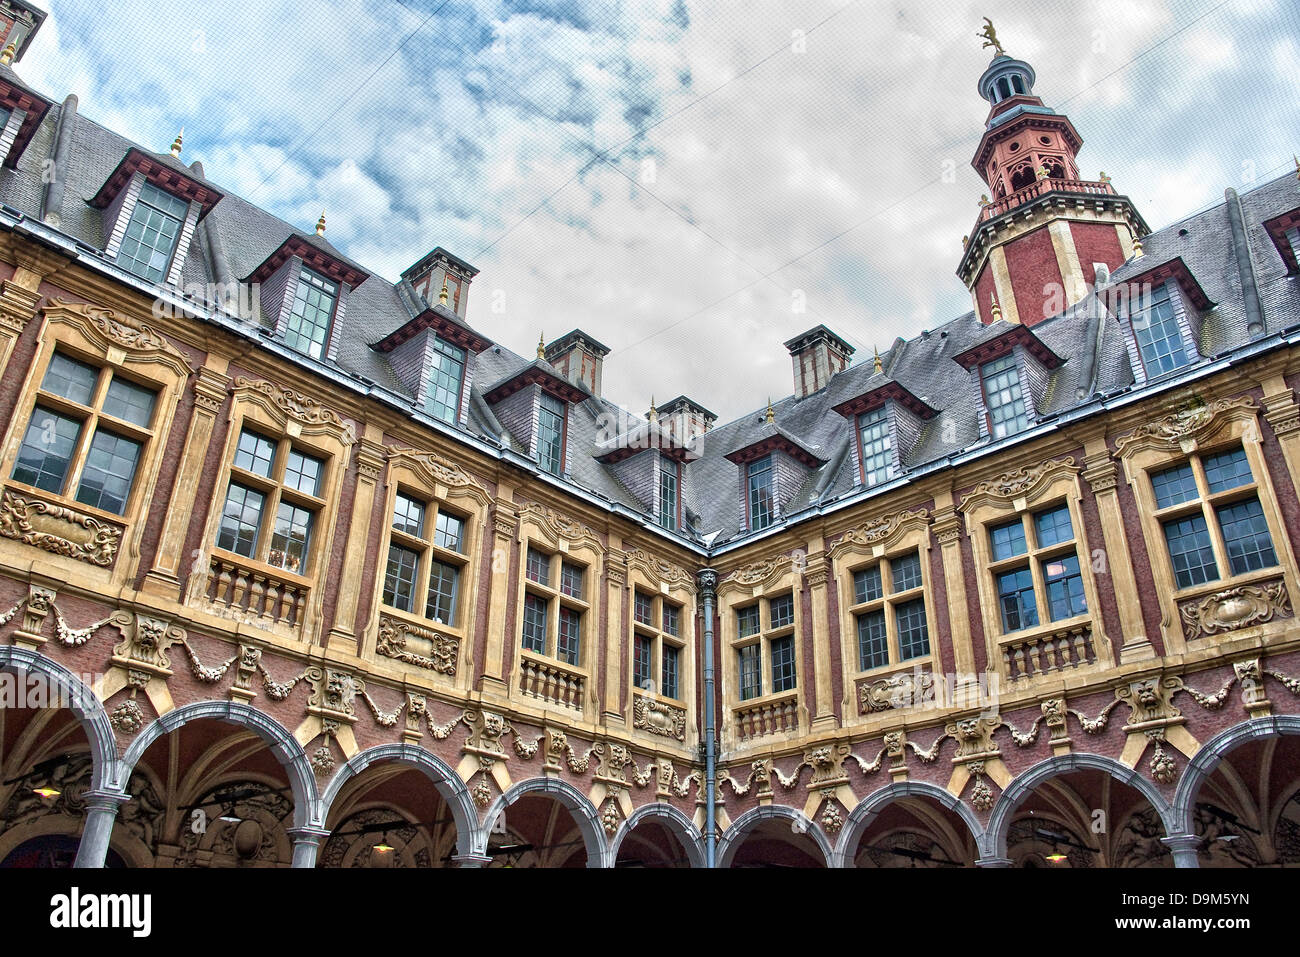 La Vieille Bourse - Lille, Northern France - Stock Image